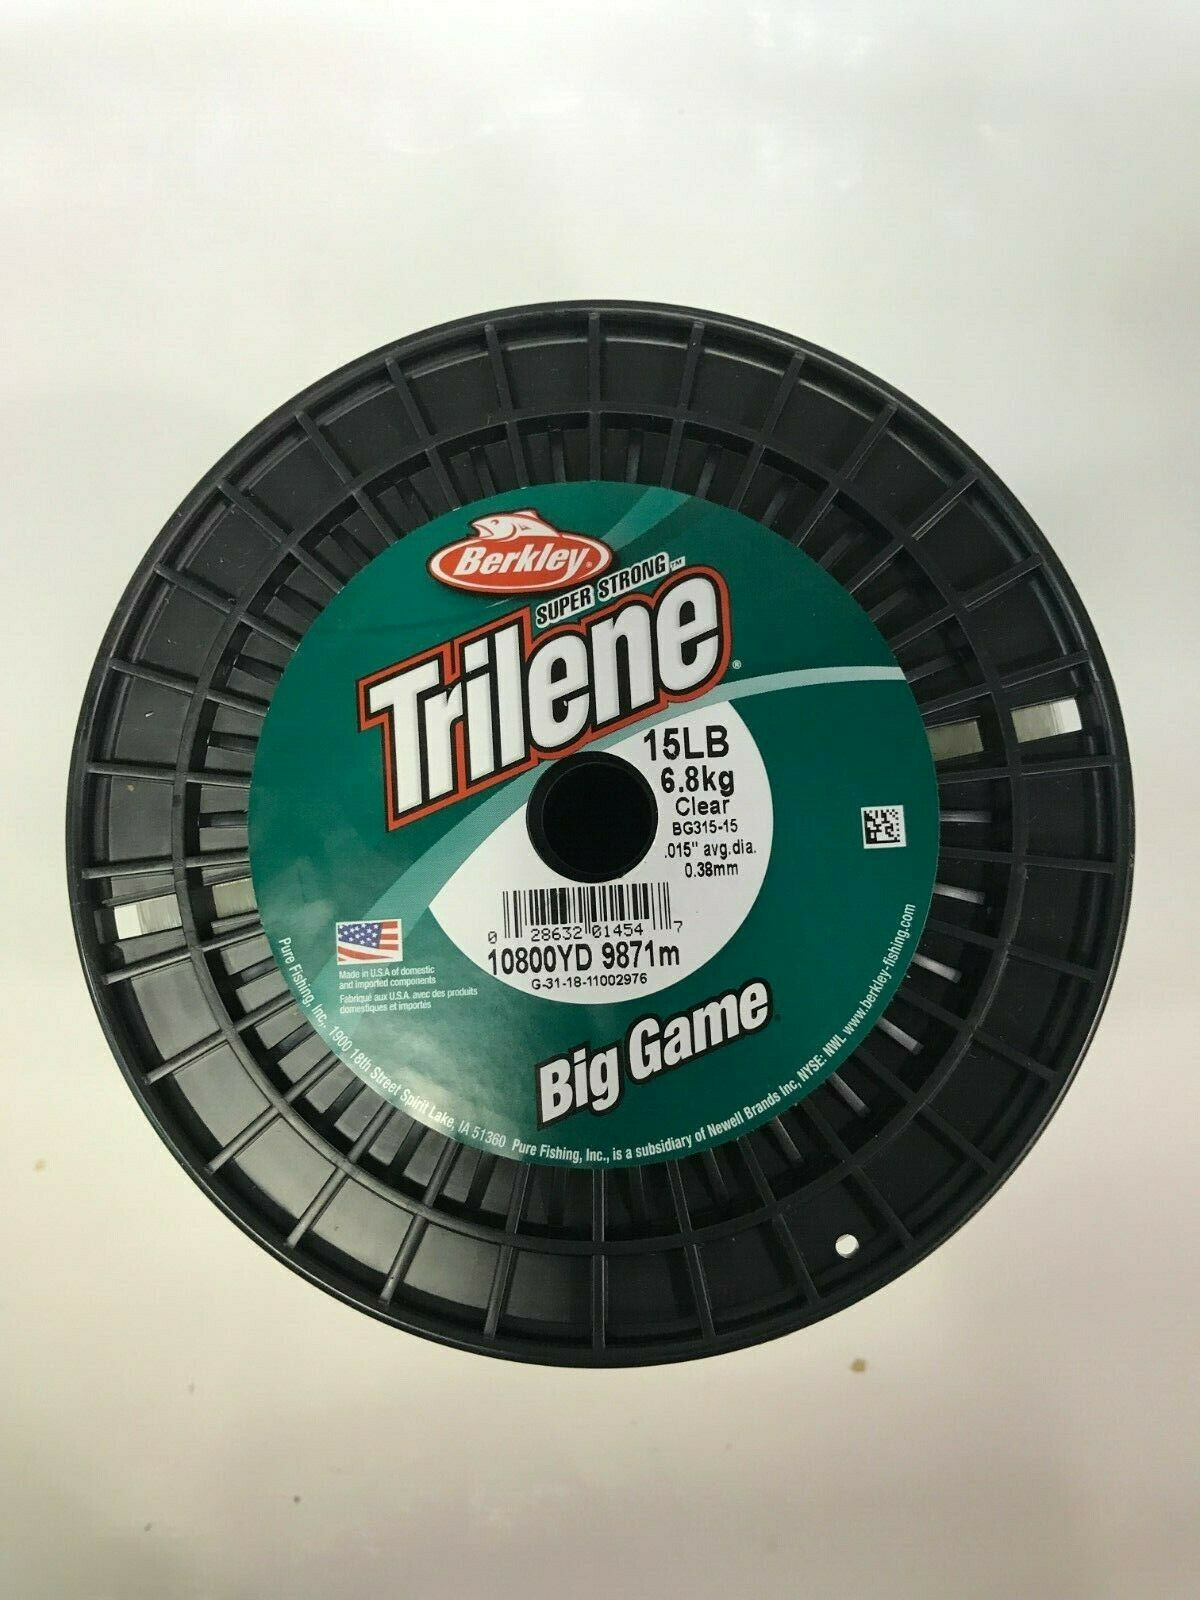 Trilene Big Game 15lb Test 3lb Spool Clear (BG315-15)